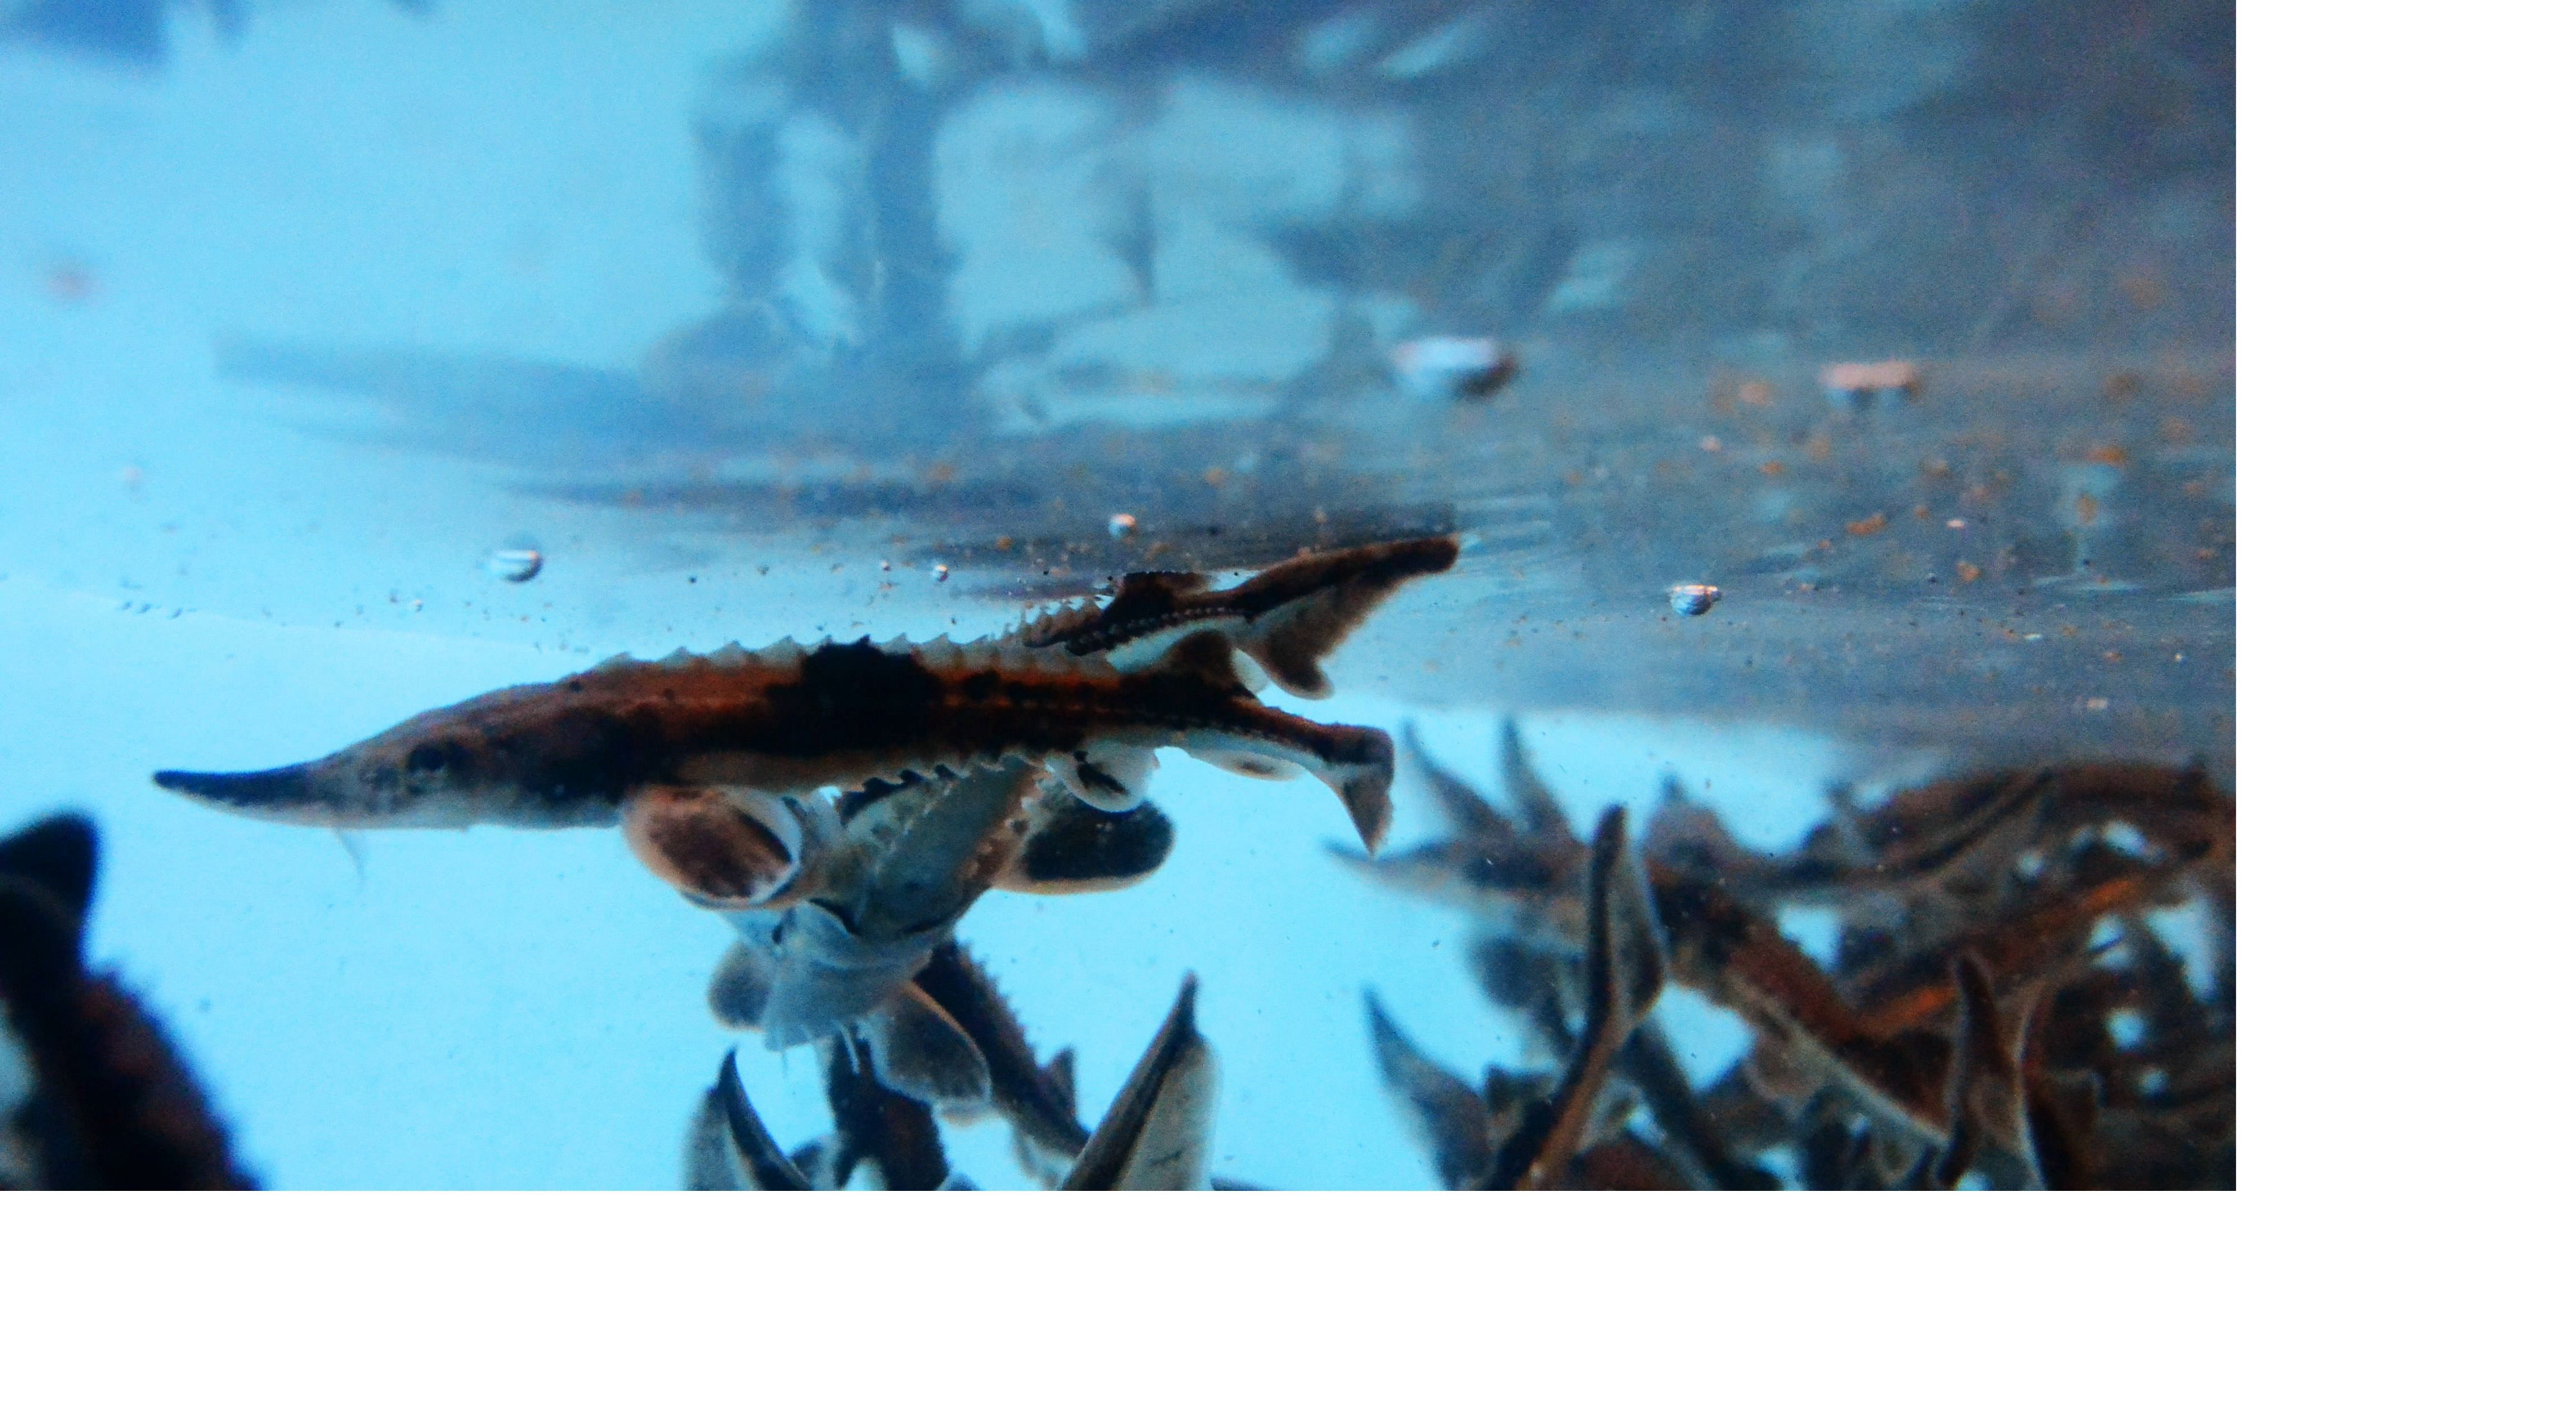 underwater view of small brown fish in a tank